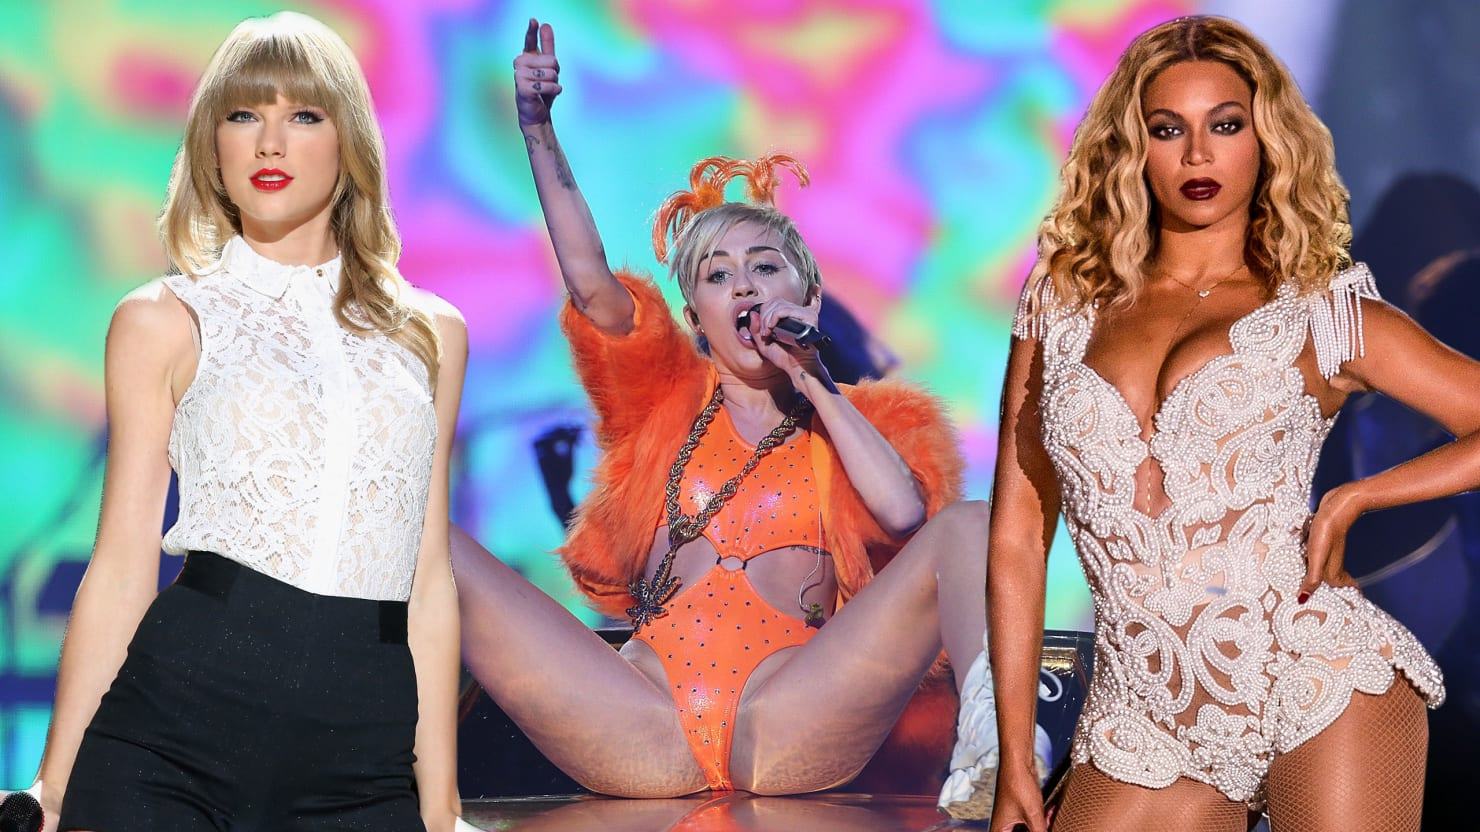 10 Biggest Grammy Award Snubs and Surprises: Meghan Trainor, Miley ...